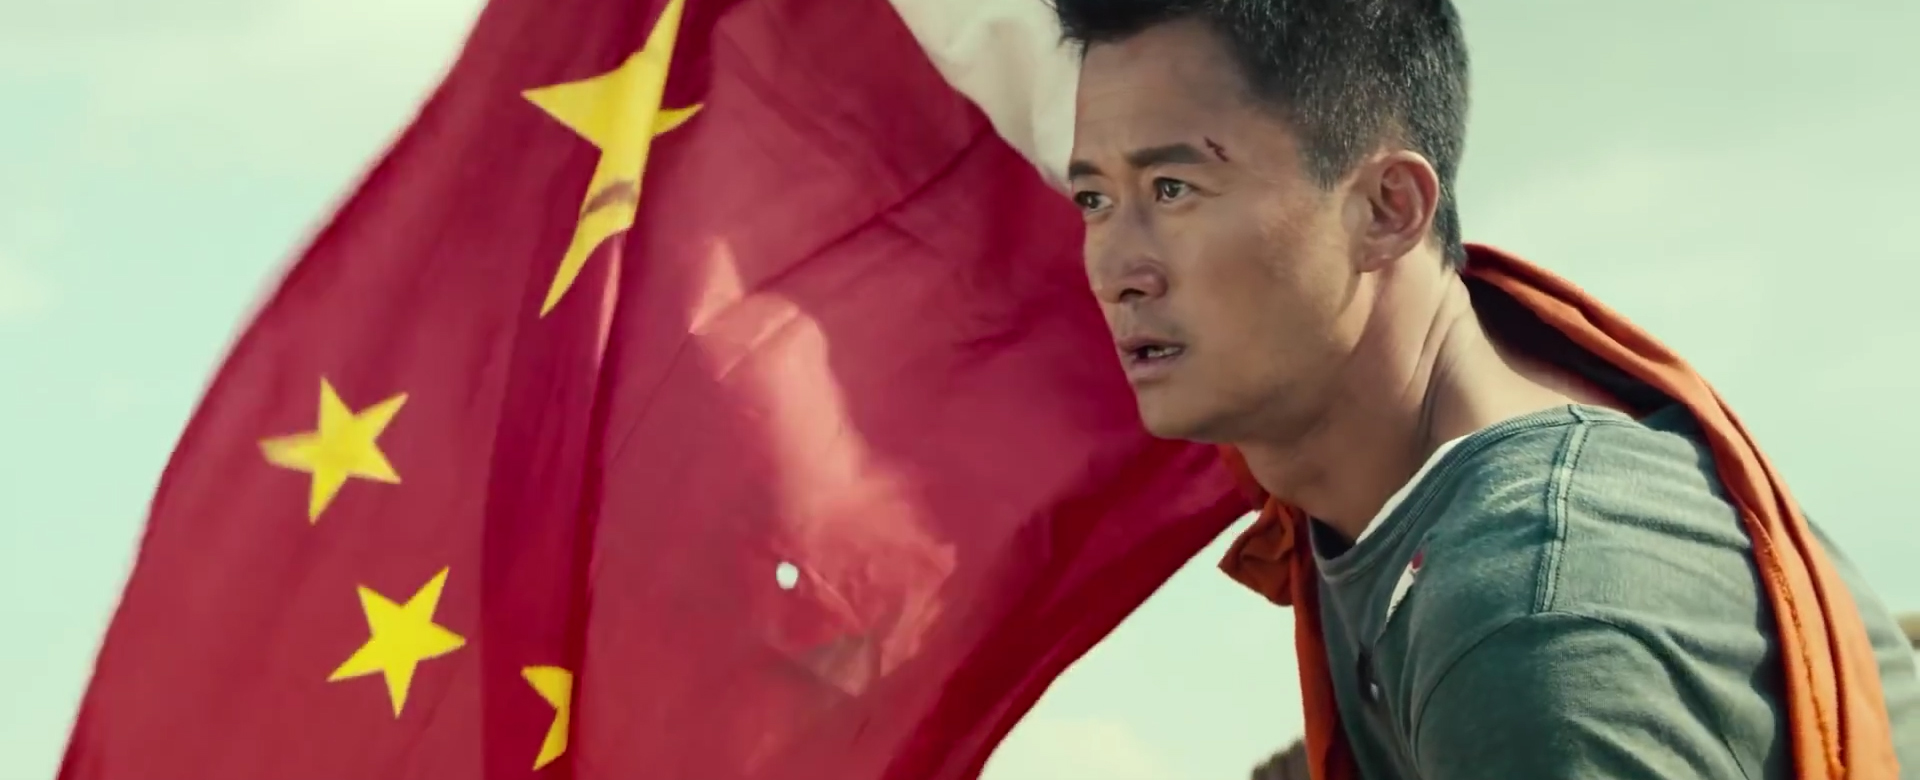 Wolf Warriors 2 (Zhan Lang 2, 战狼2). Image Credit: Well Go.